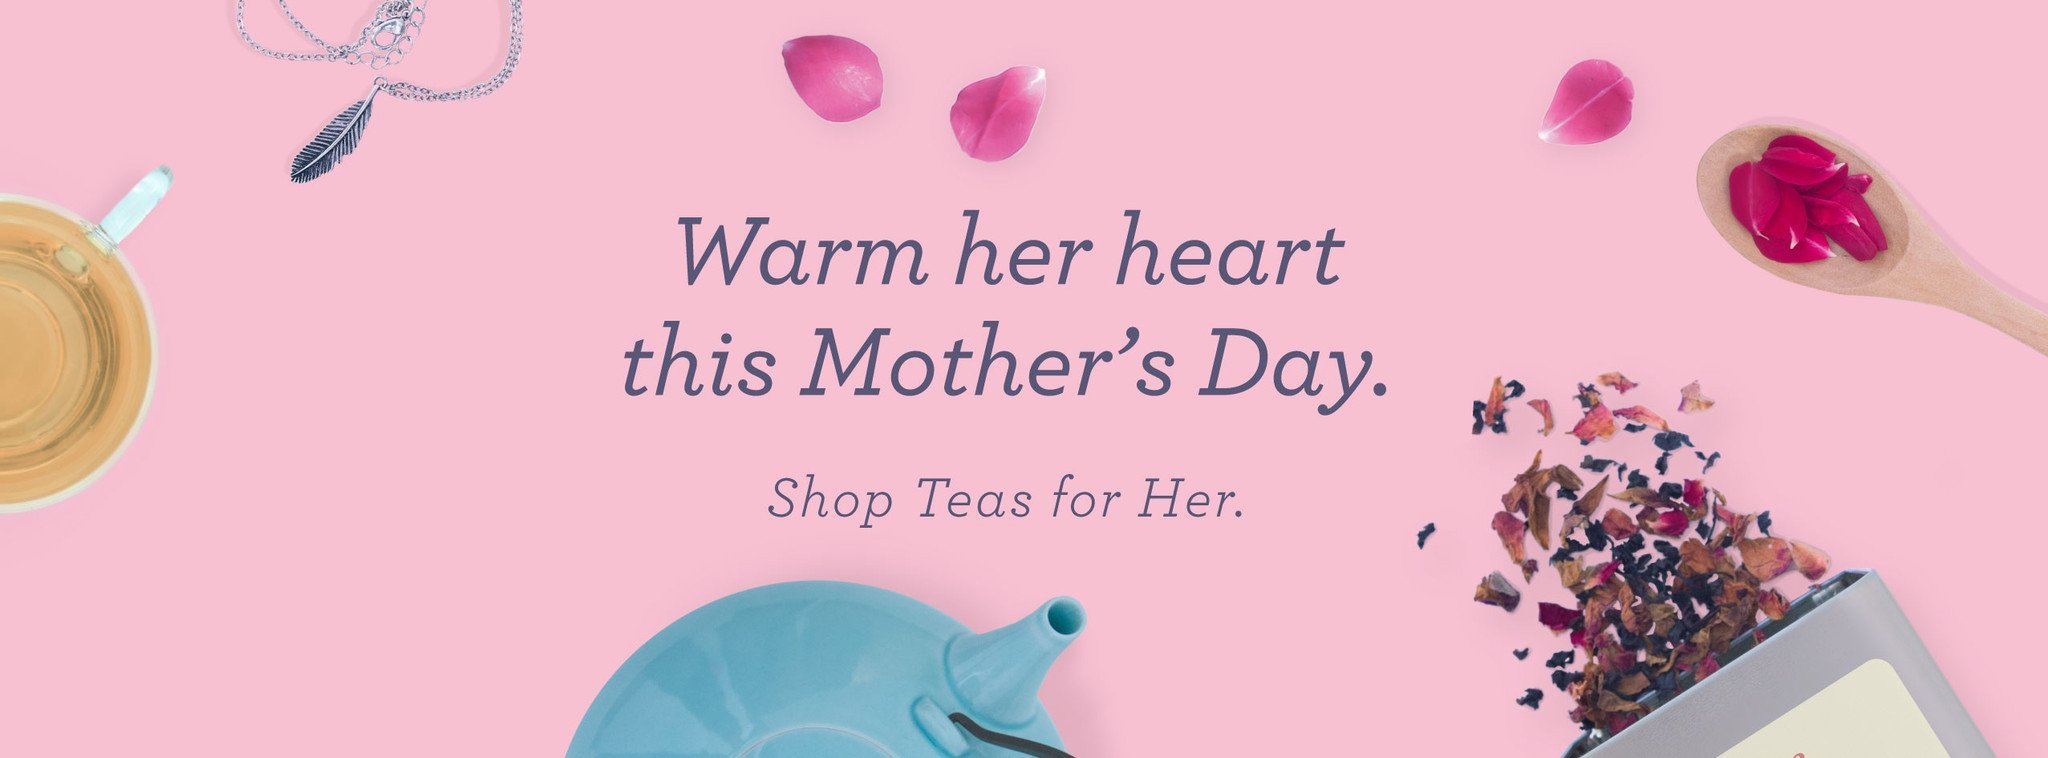 This Mother's Day, Bring Home a Free Tea Trunk Hamper!